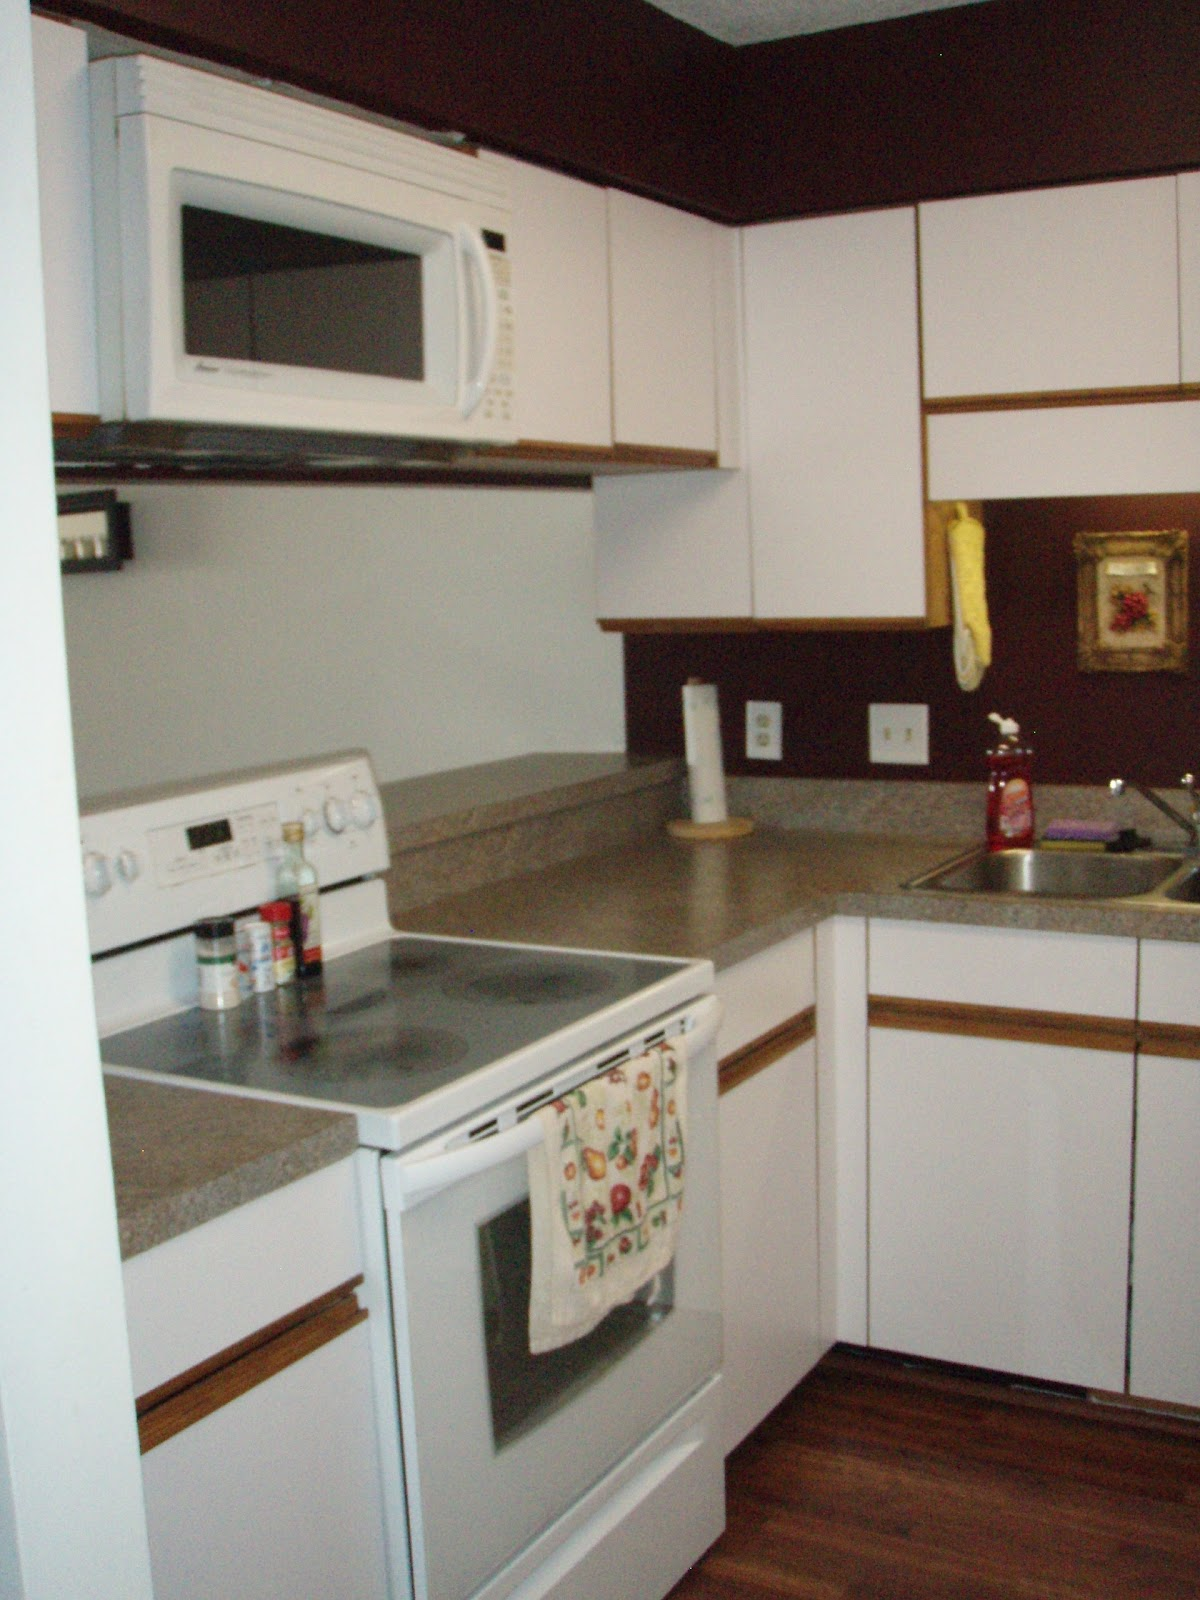 Ormond beach rental condos and vacation homes ocean house for 2 kitchen homes for rent